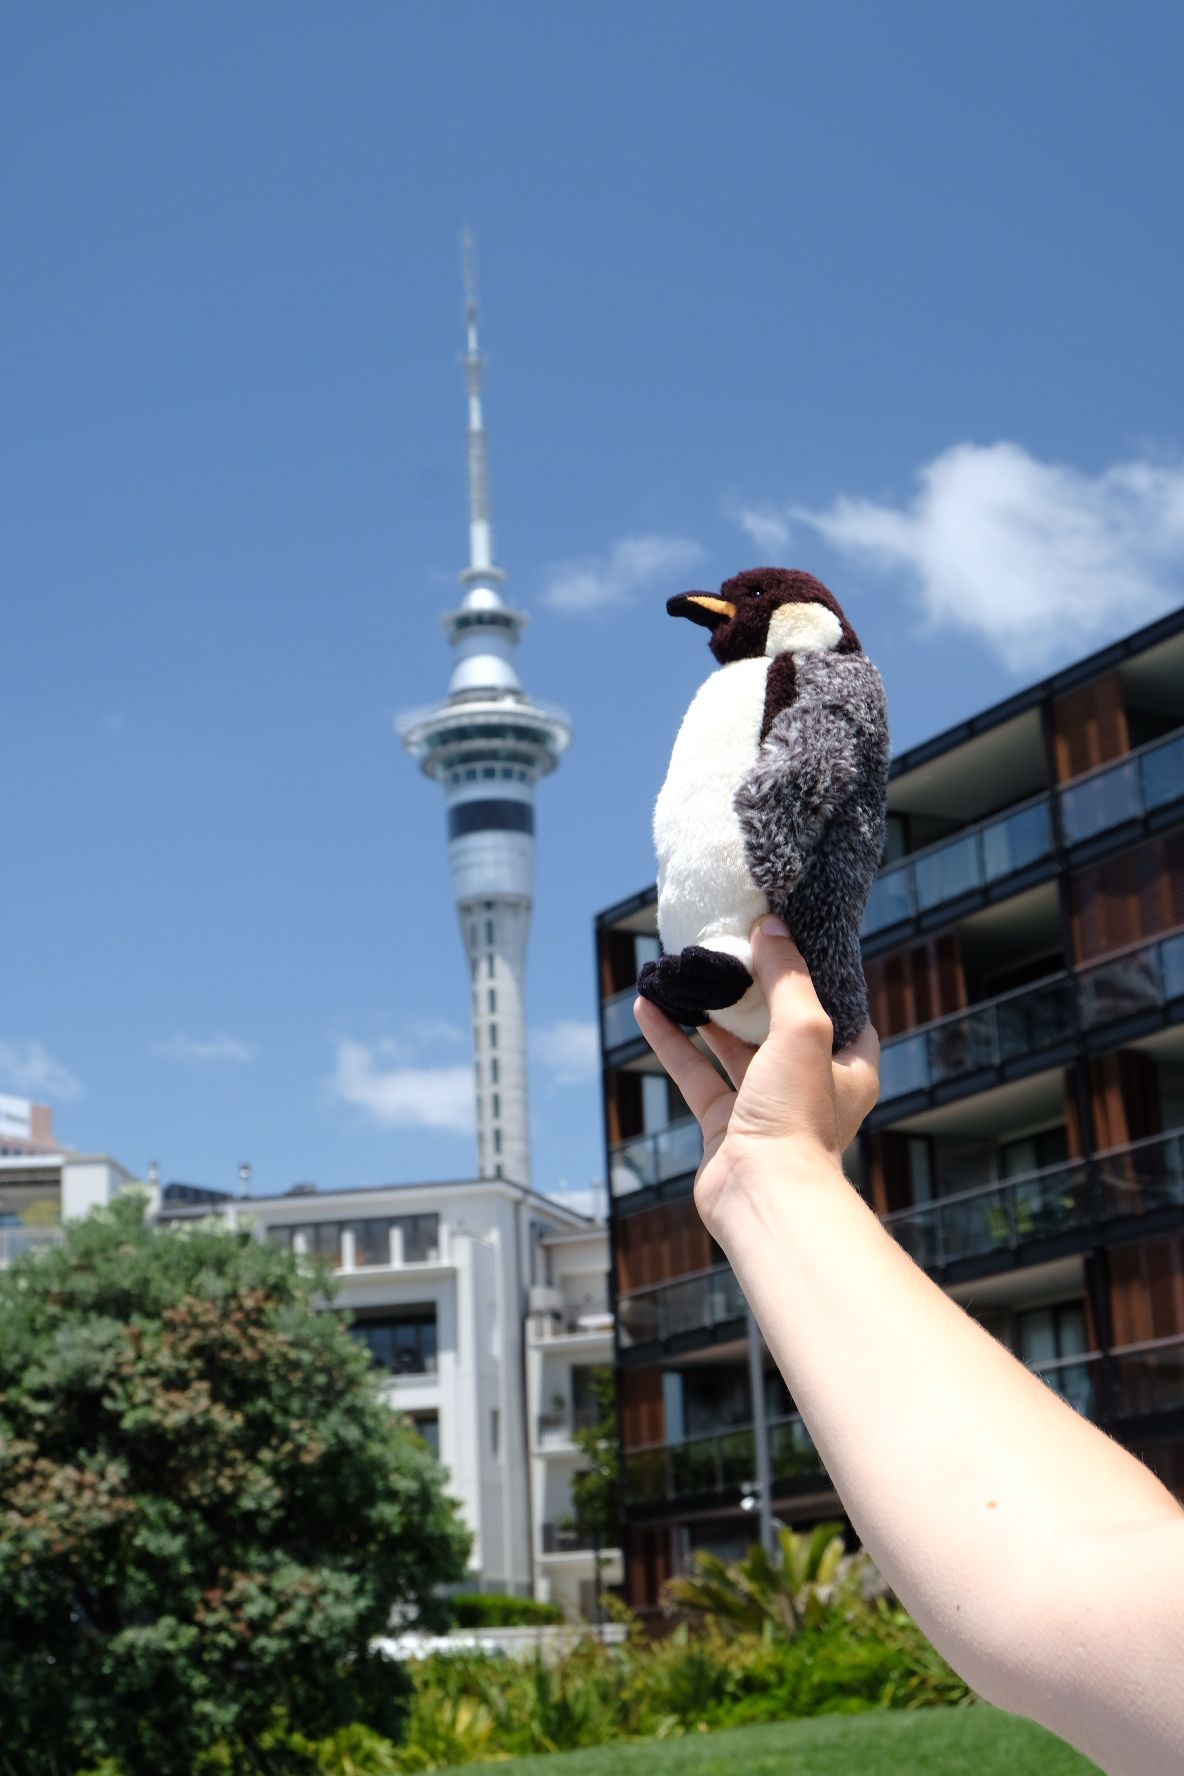 Skytower (actual size) and Philip